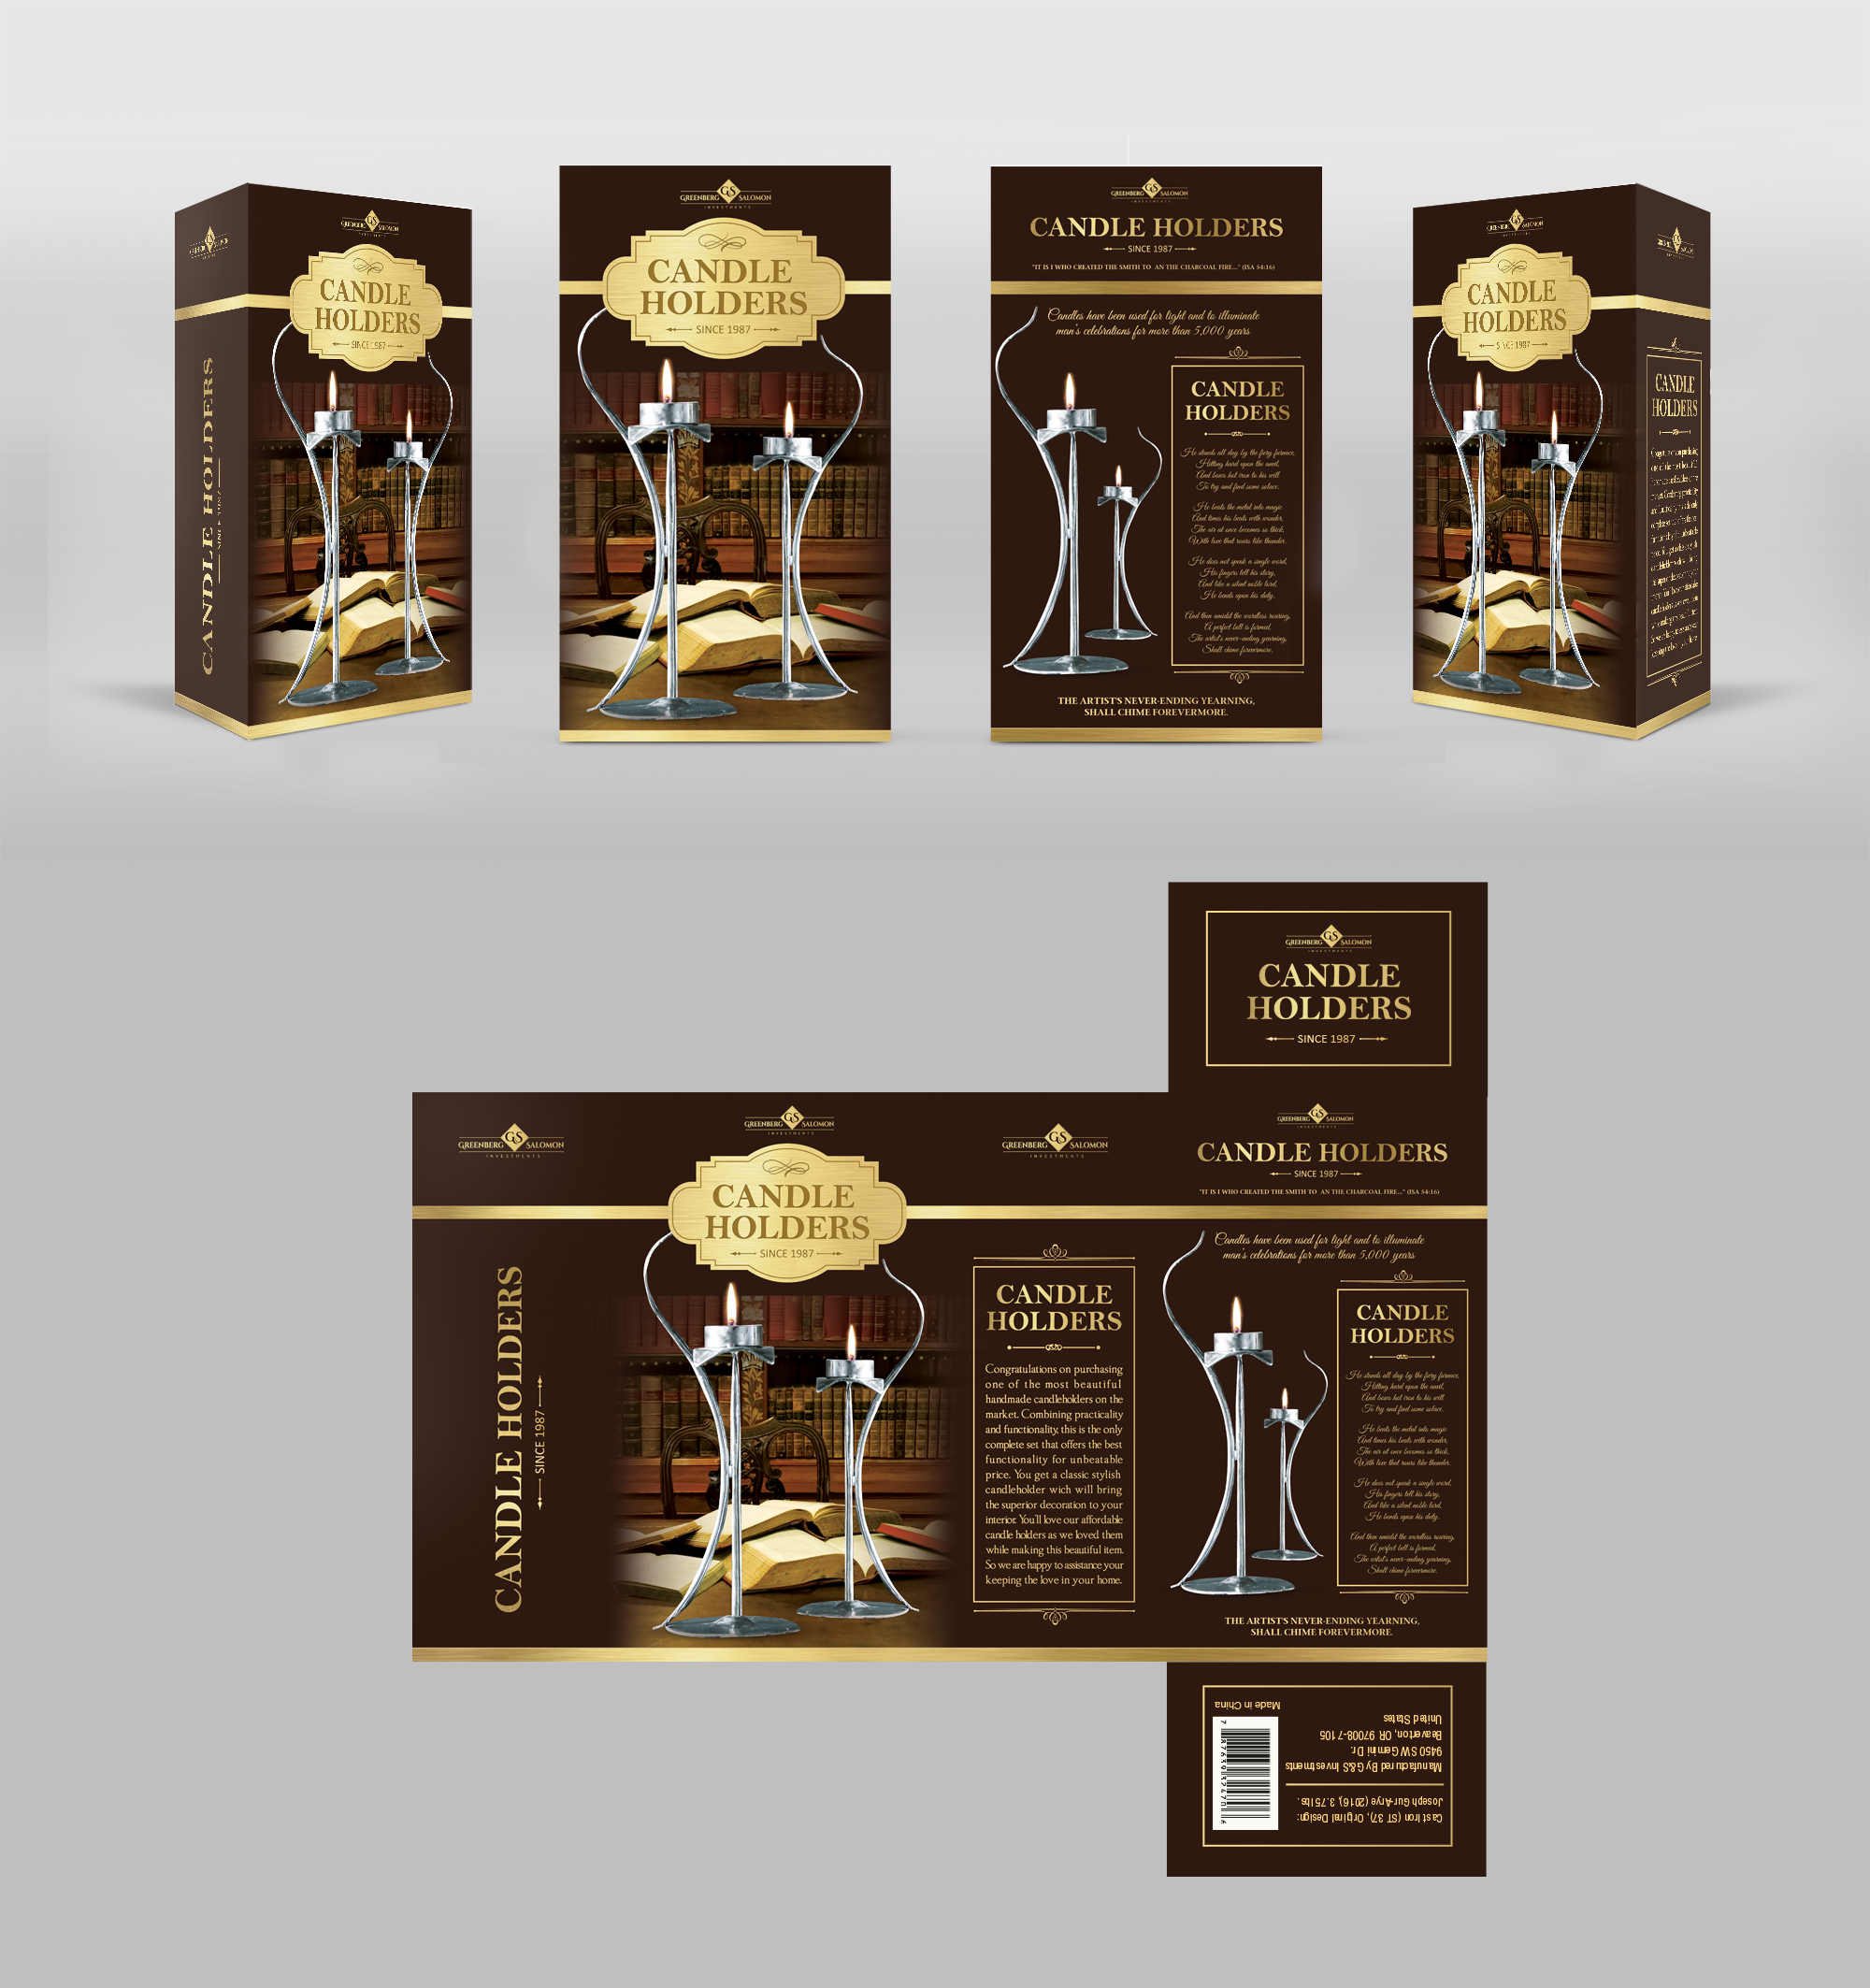 Packaging design for the candleholders set